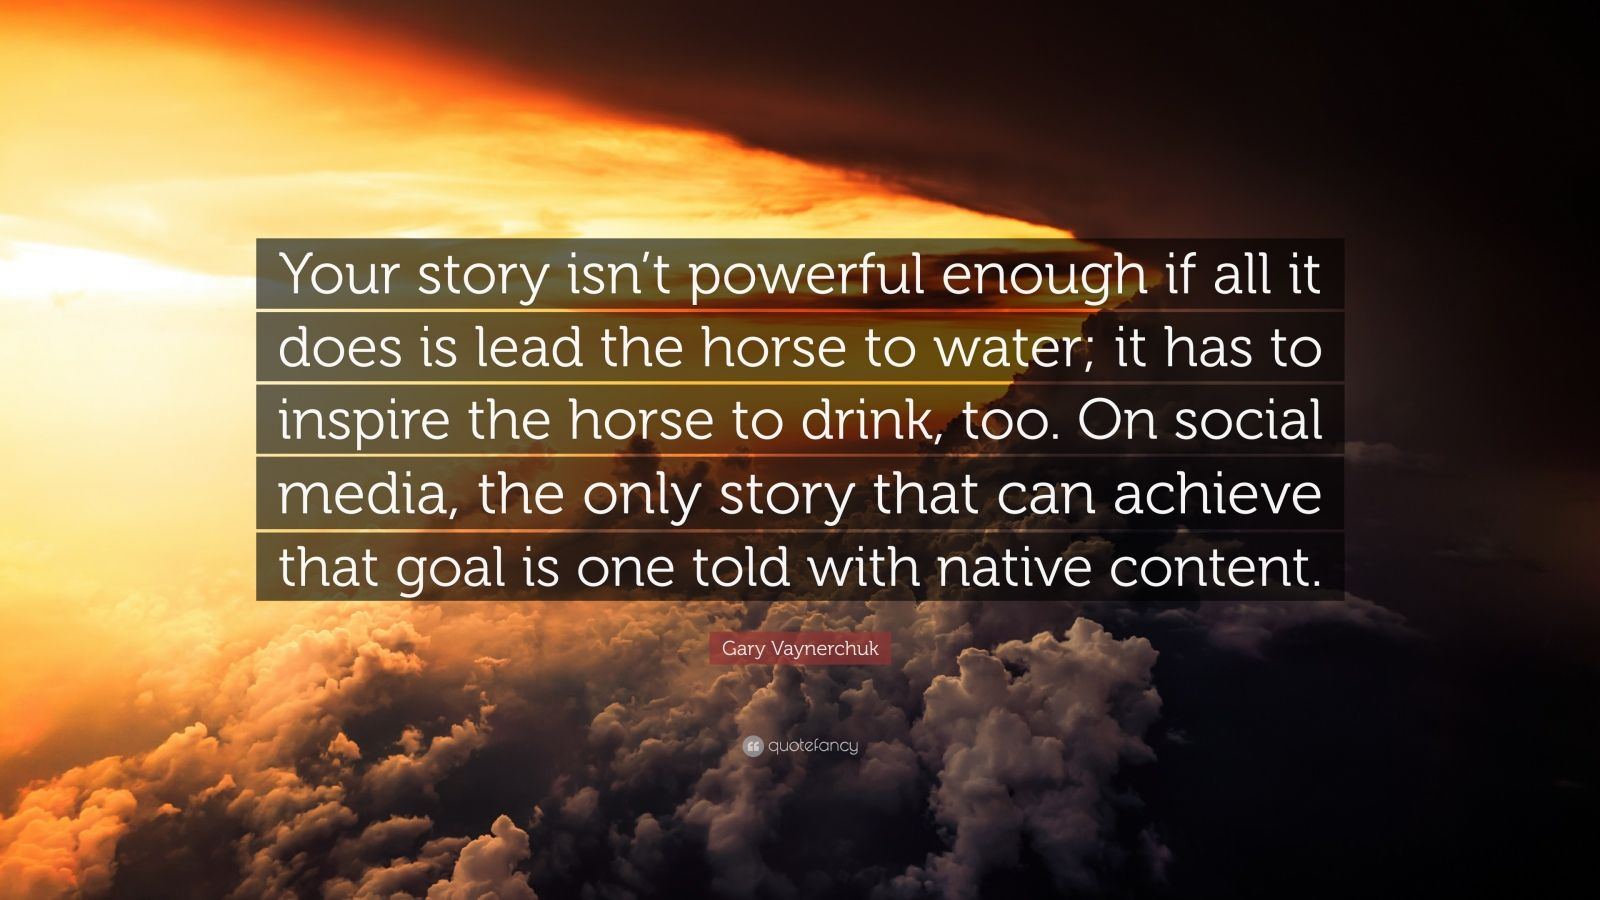 """Gary Vaynerchuk Quote: """"Your story isn't powerful enough if all it does is lead the horse to water; it has to inspire the horse to drink, too. On social media, the only story that can achieve that goal is one told with native content."""""""